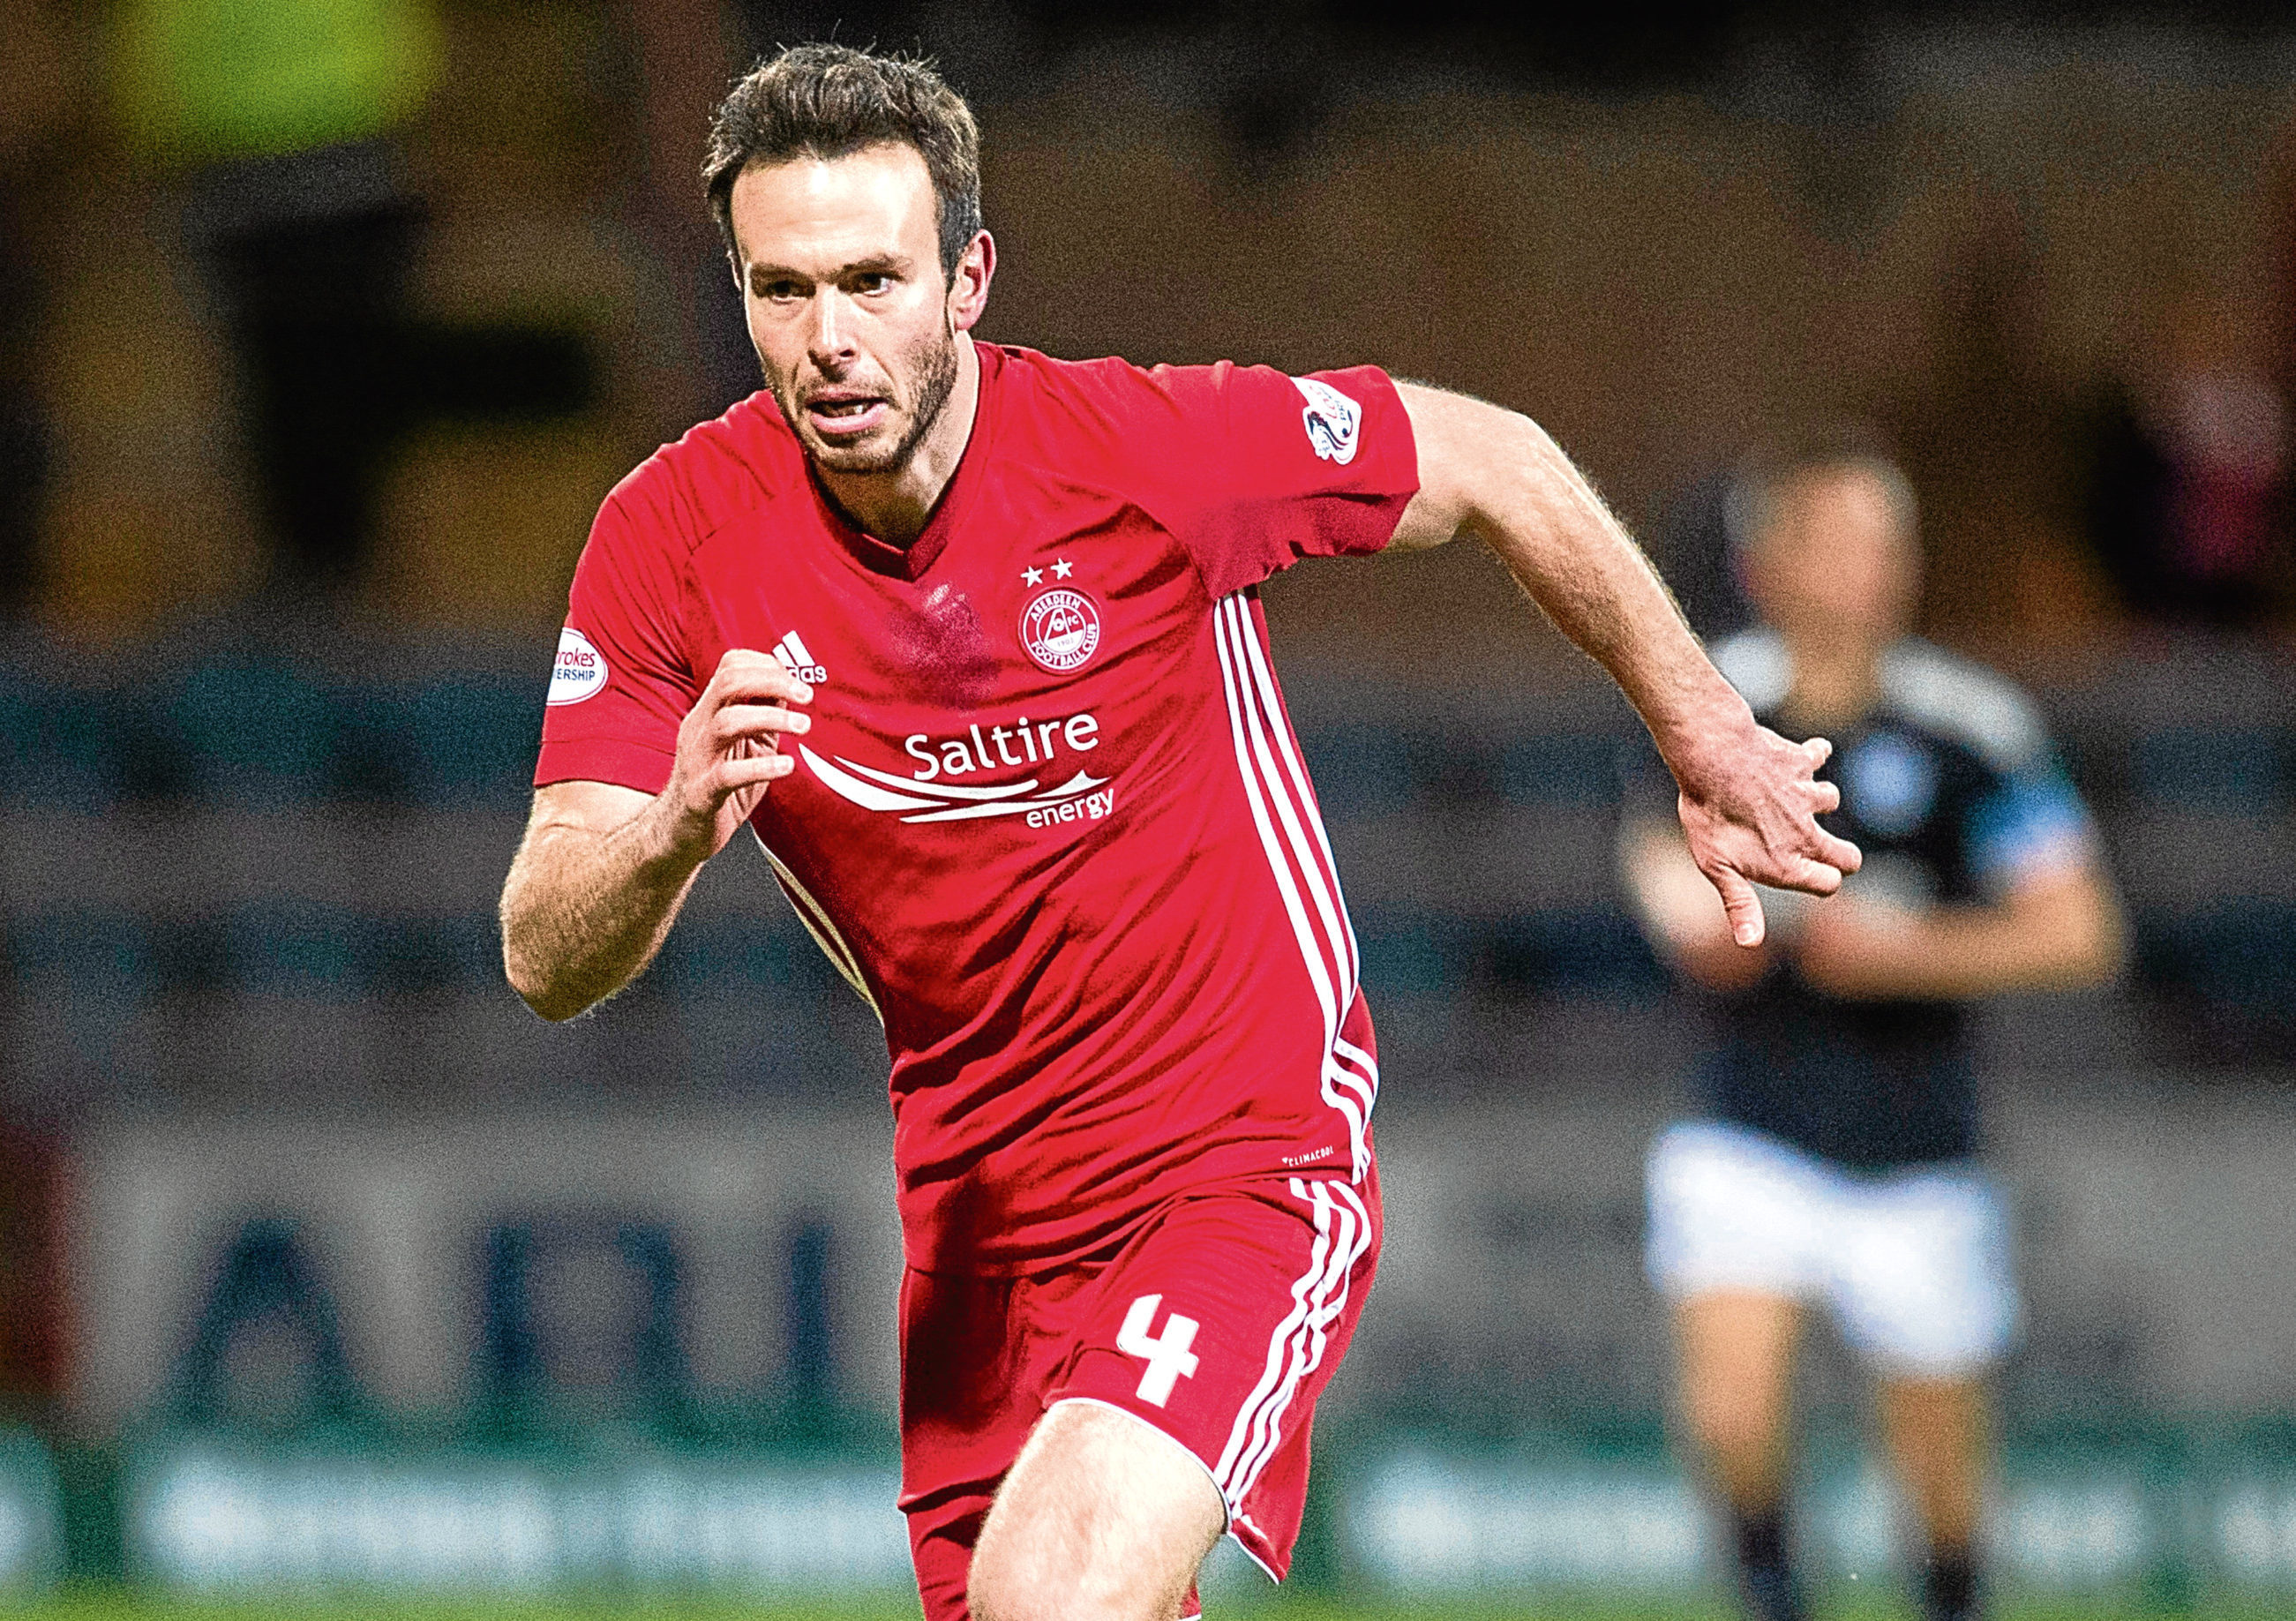 Andy Considine in action for Aberdeen.